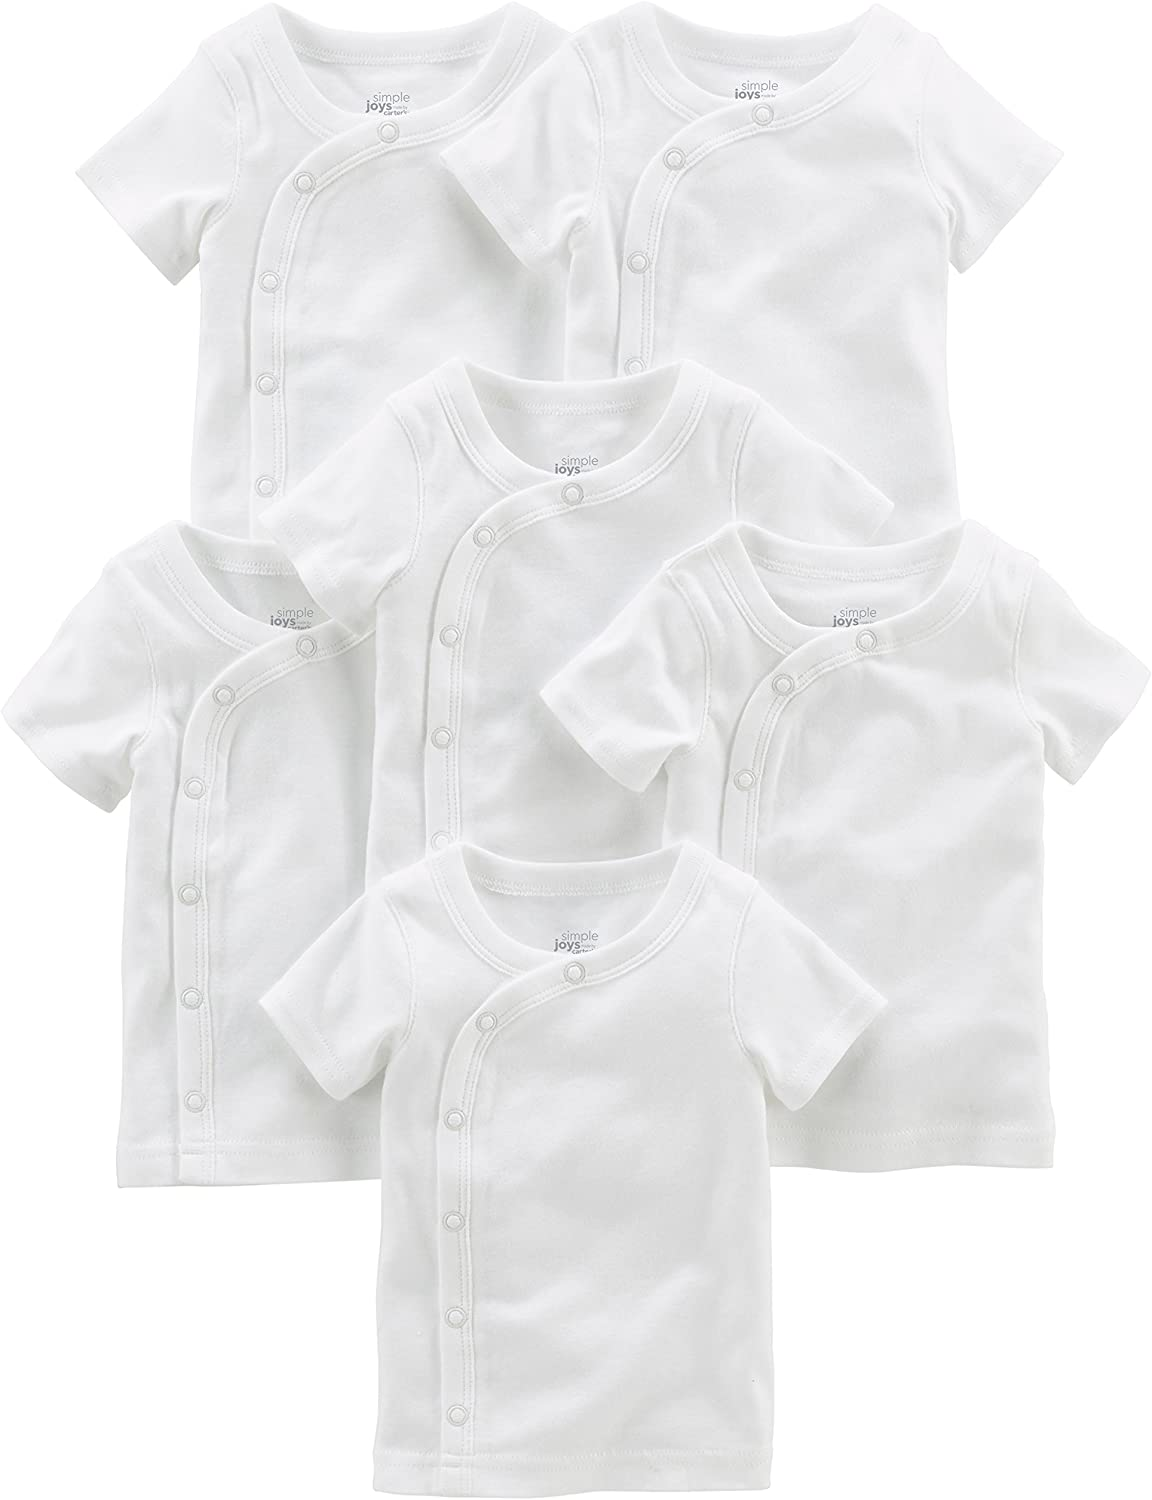 Simple Joys by Carters Baby Boys 6-Pack Side-snap Short-Sleeve Shirt